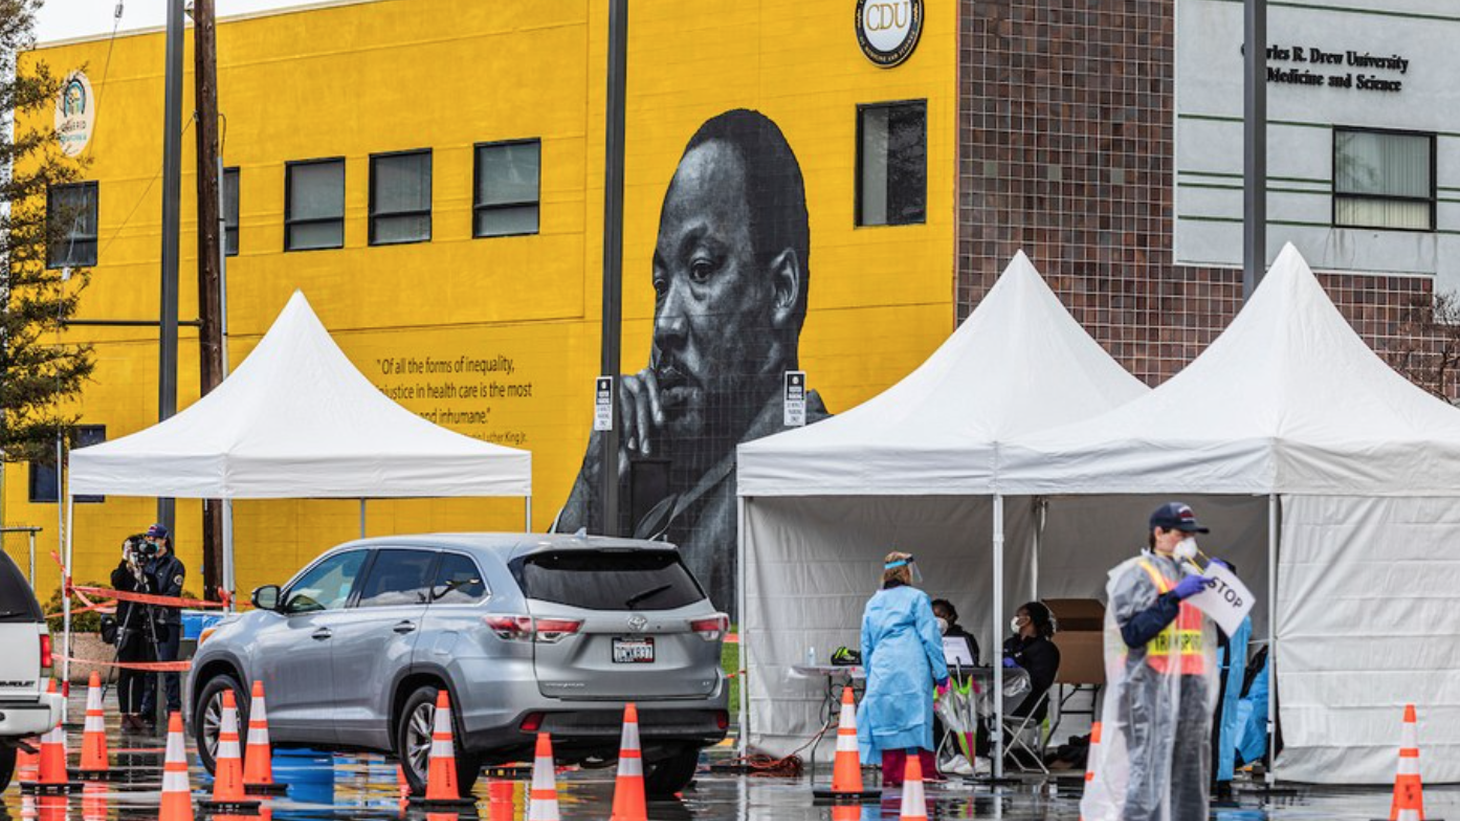 This COVID-19 testing site at Charles R. Drew University of Medicine and Science was opened specifically to help support LA's Black community.